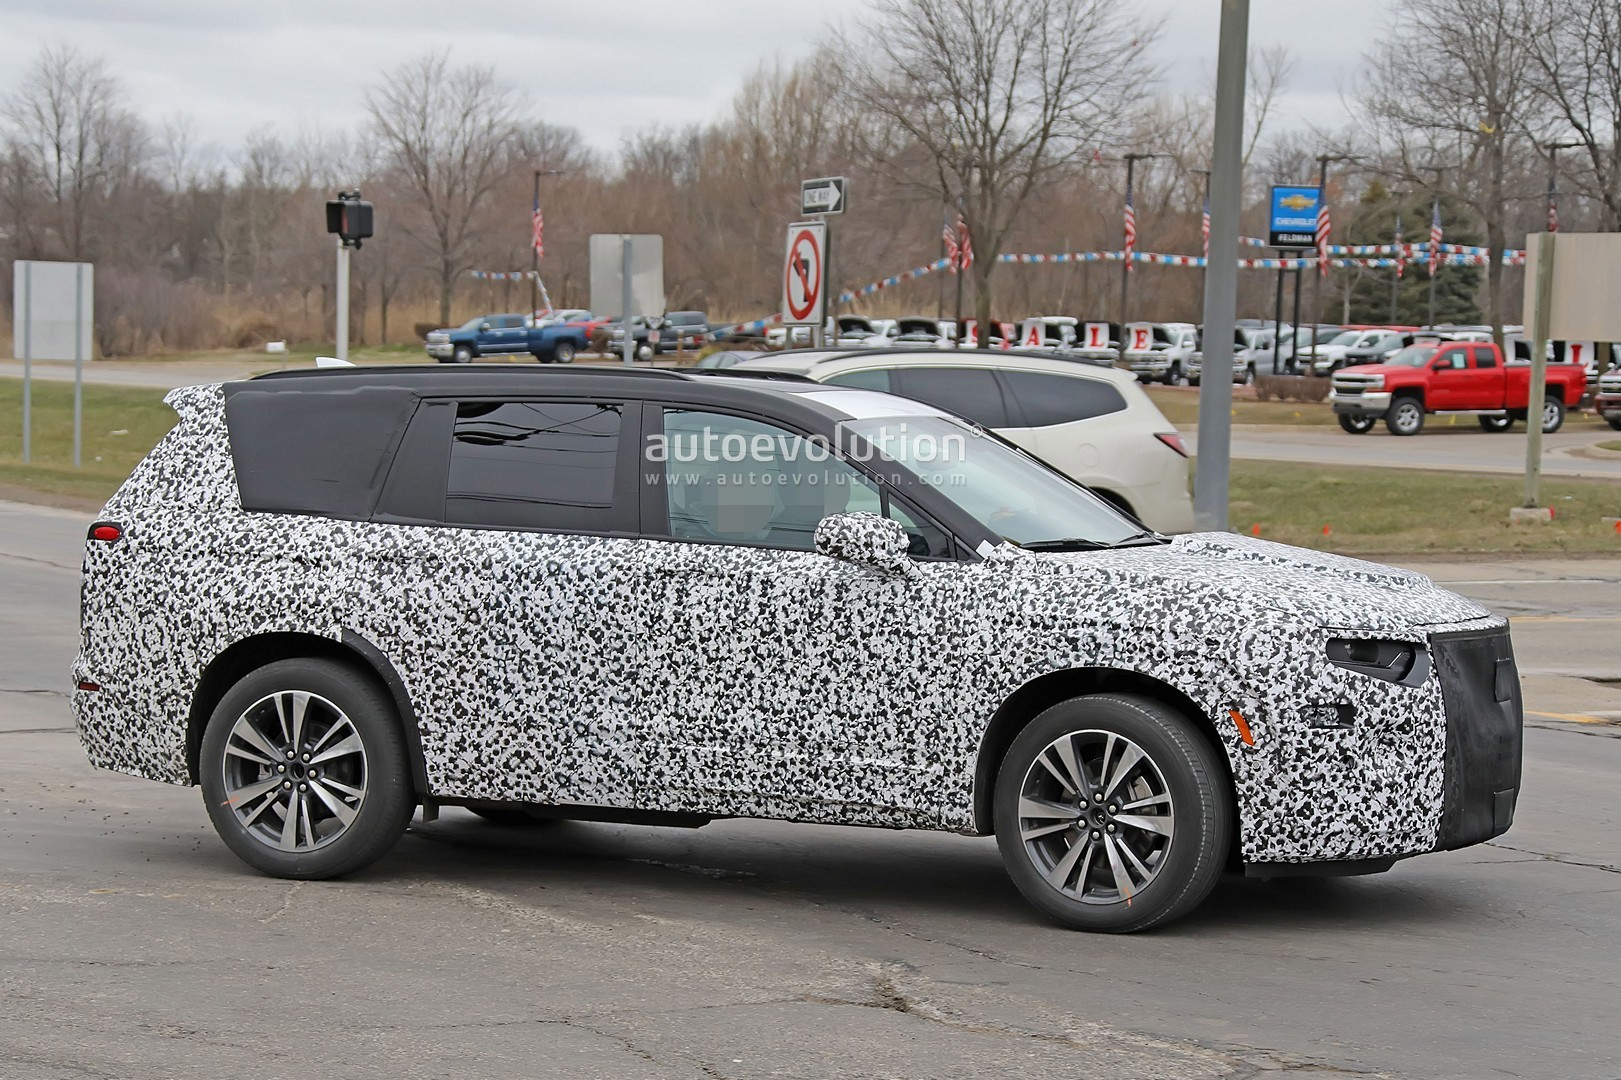 Spyshots Cadillac Xt6 Three Row Crossover Spied For The